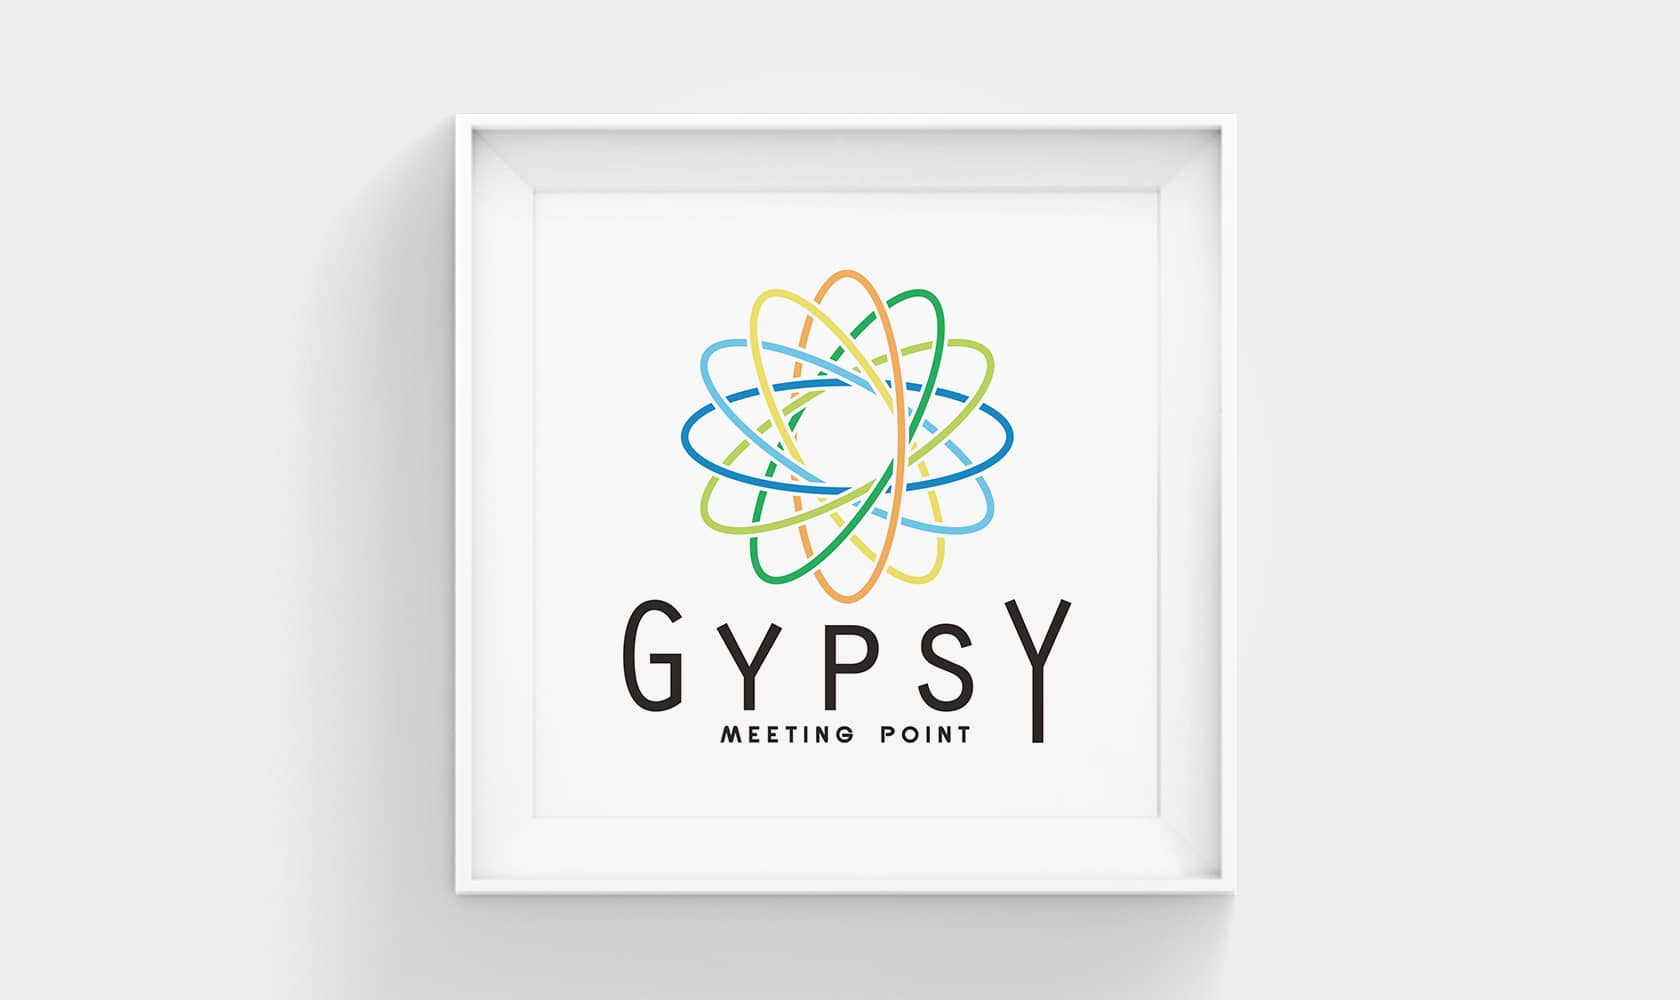 GYPSY MEETING POINT LOGO